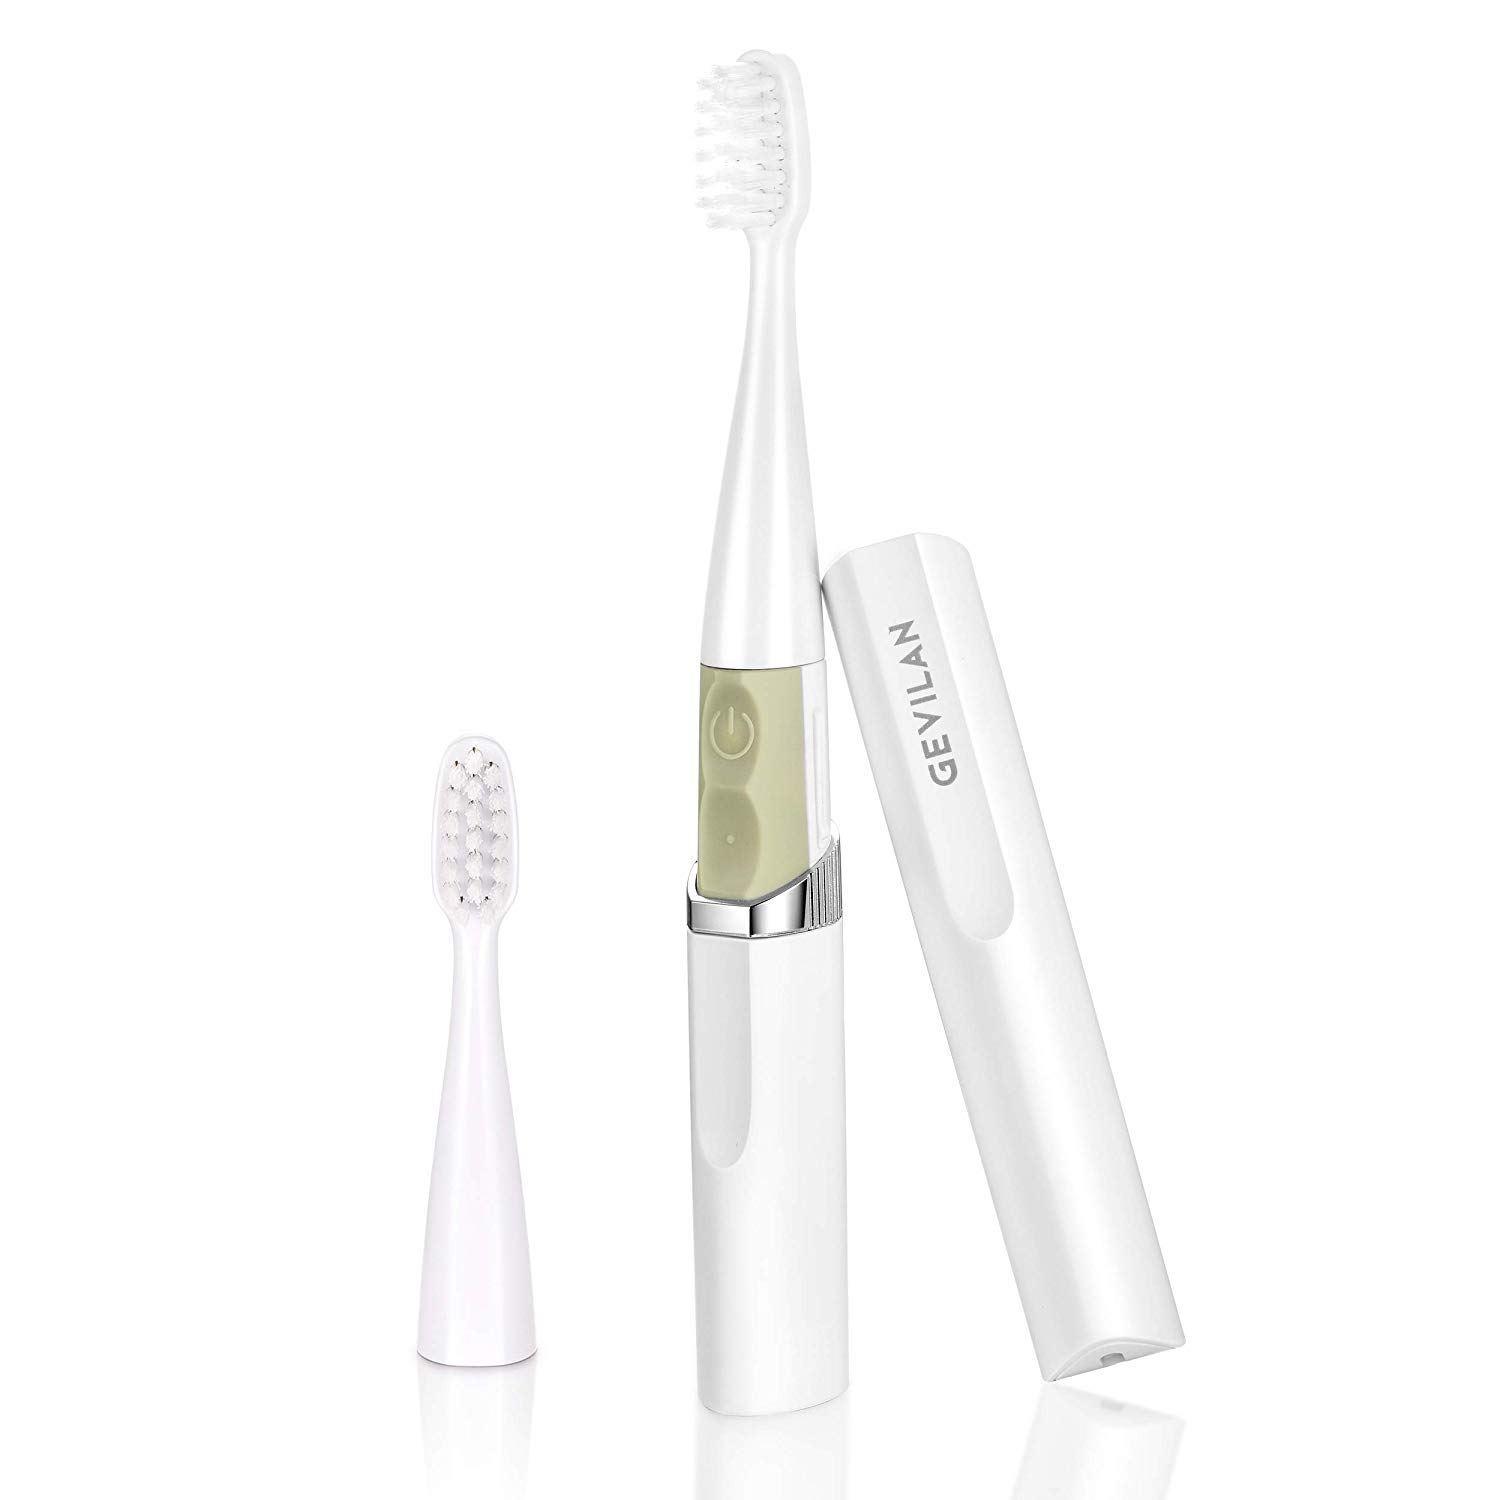 Travel Electric Toothbrush by Gevilan with 2 Modes Battery Powered, Waterproof and Portable Lipstick Mini Design for Daily Oral Beauty Care, Trip(White)